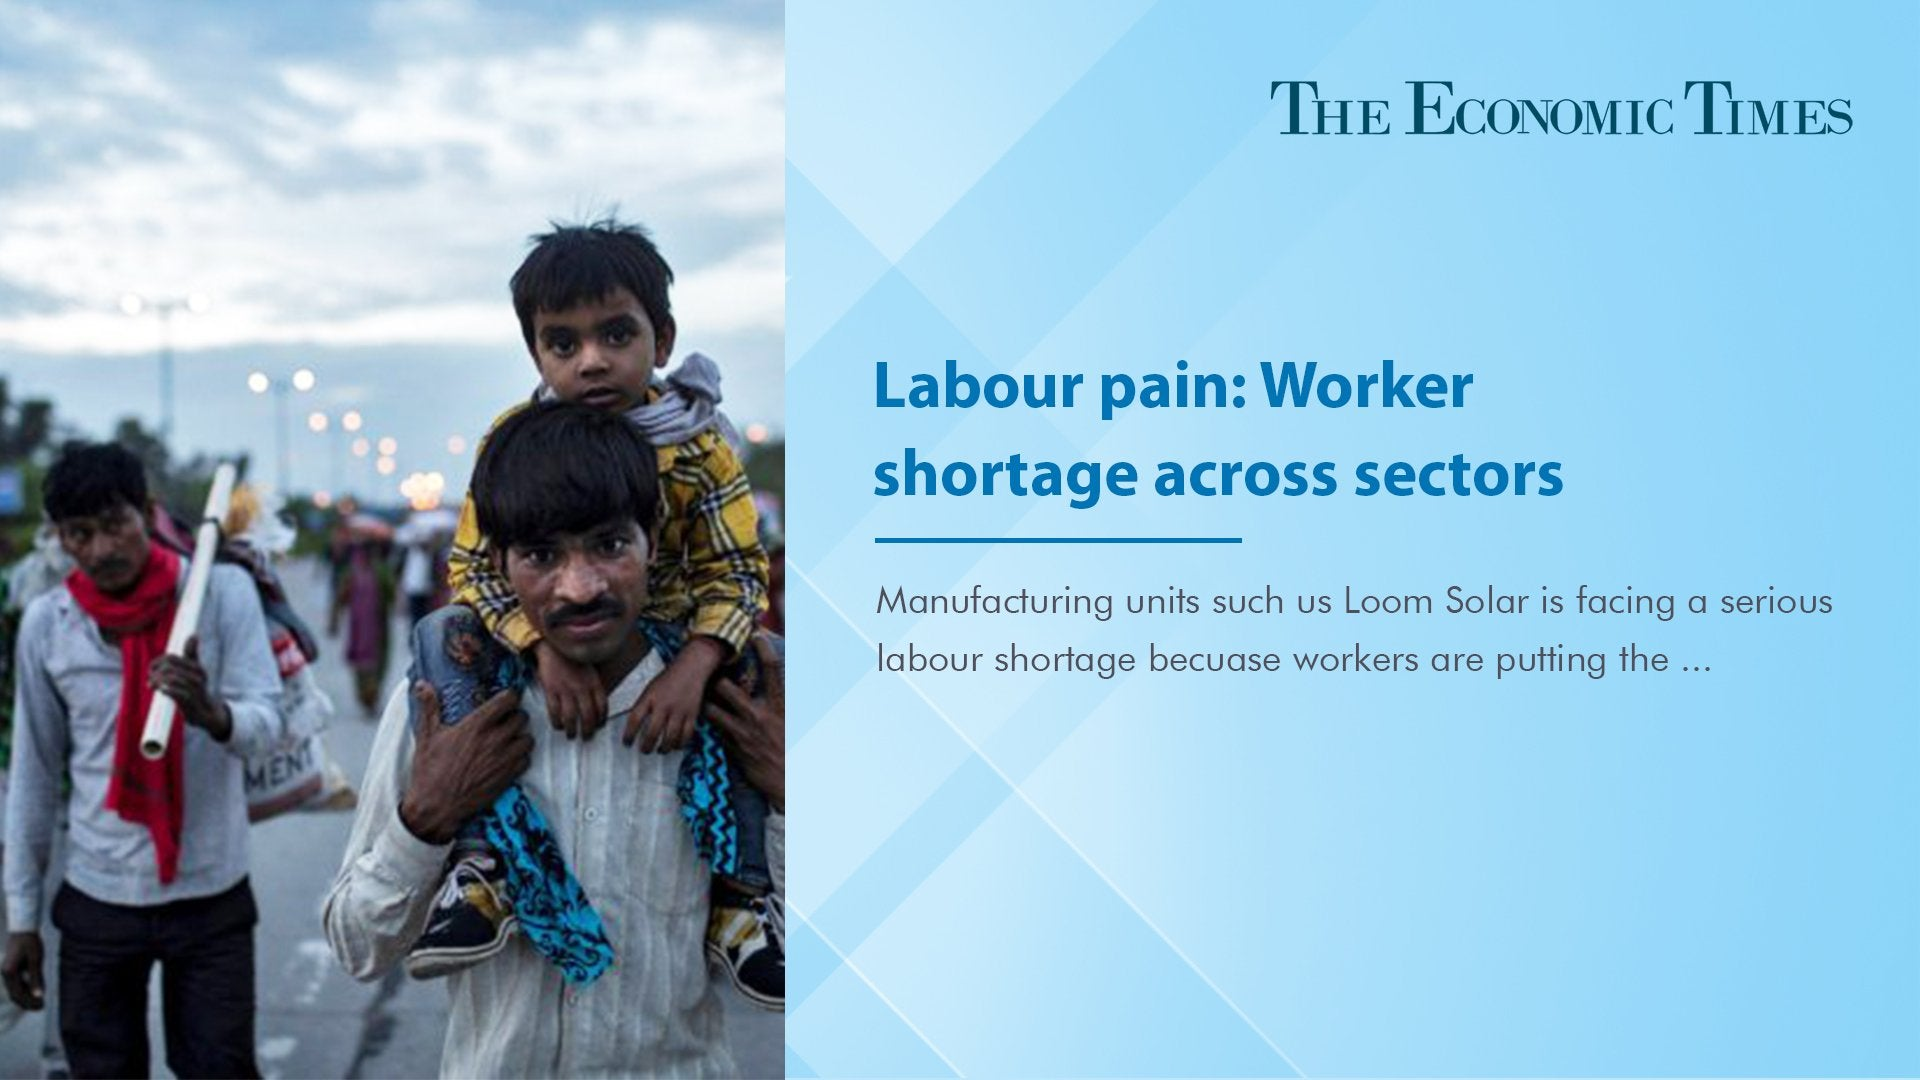 Labour pain: Worker shortage across sectors